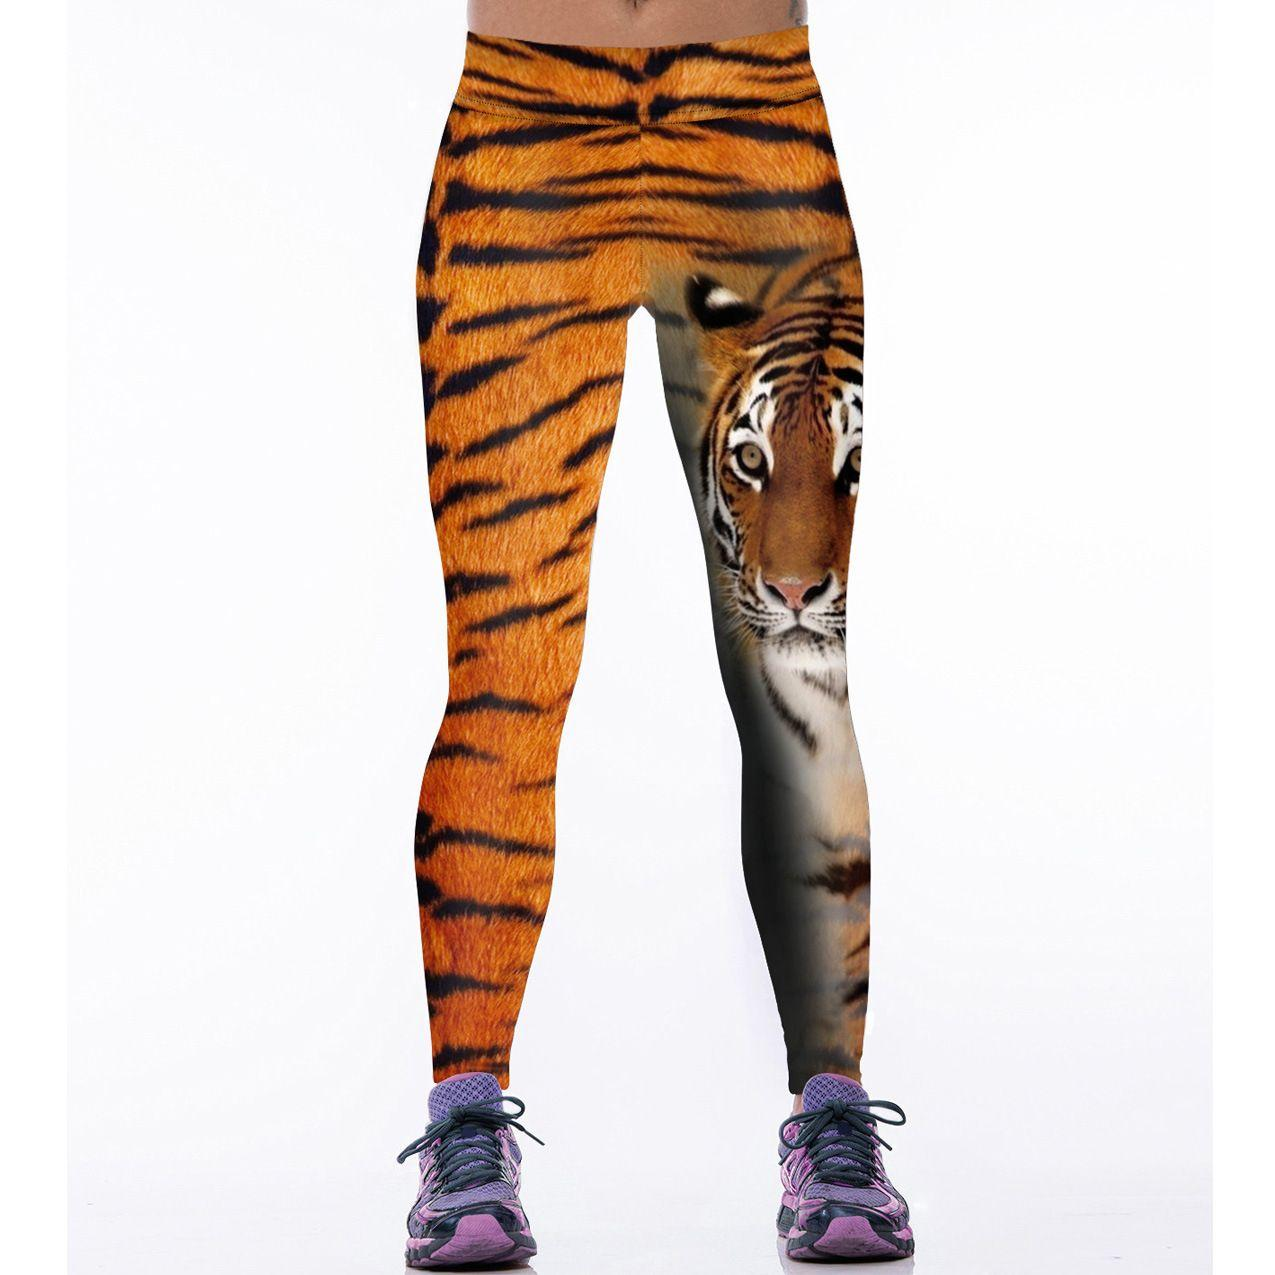 853995330e 2019 3D Tiger Printed Yoga Pants Fitness Women Workout Sports High Elastic  Waist Gym Running Leggings Tights Dry Quick Breathable From Cwq10, ...